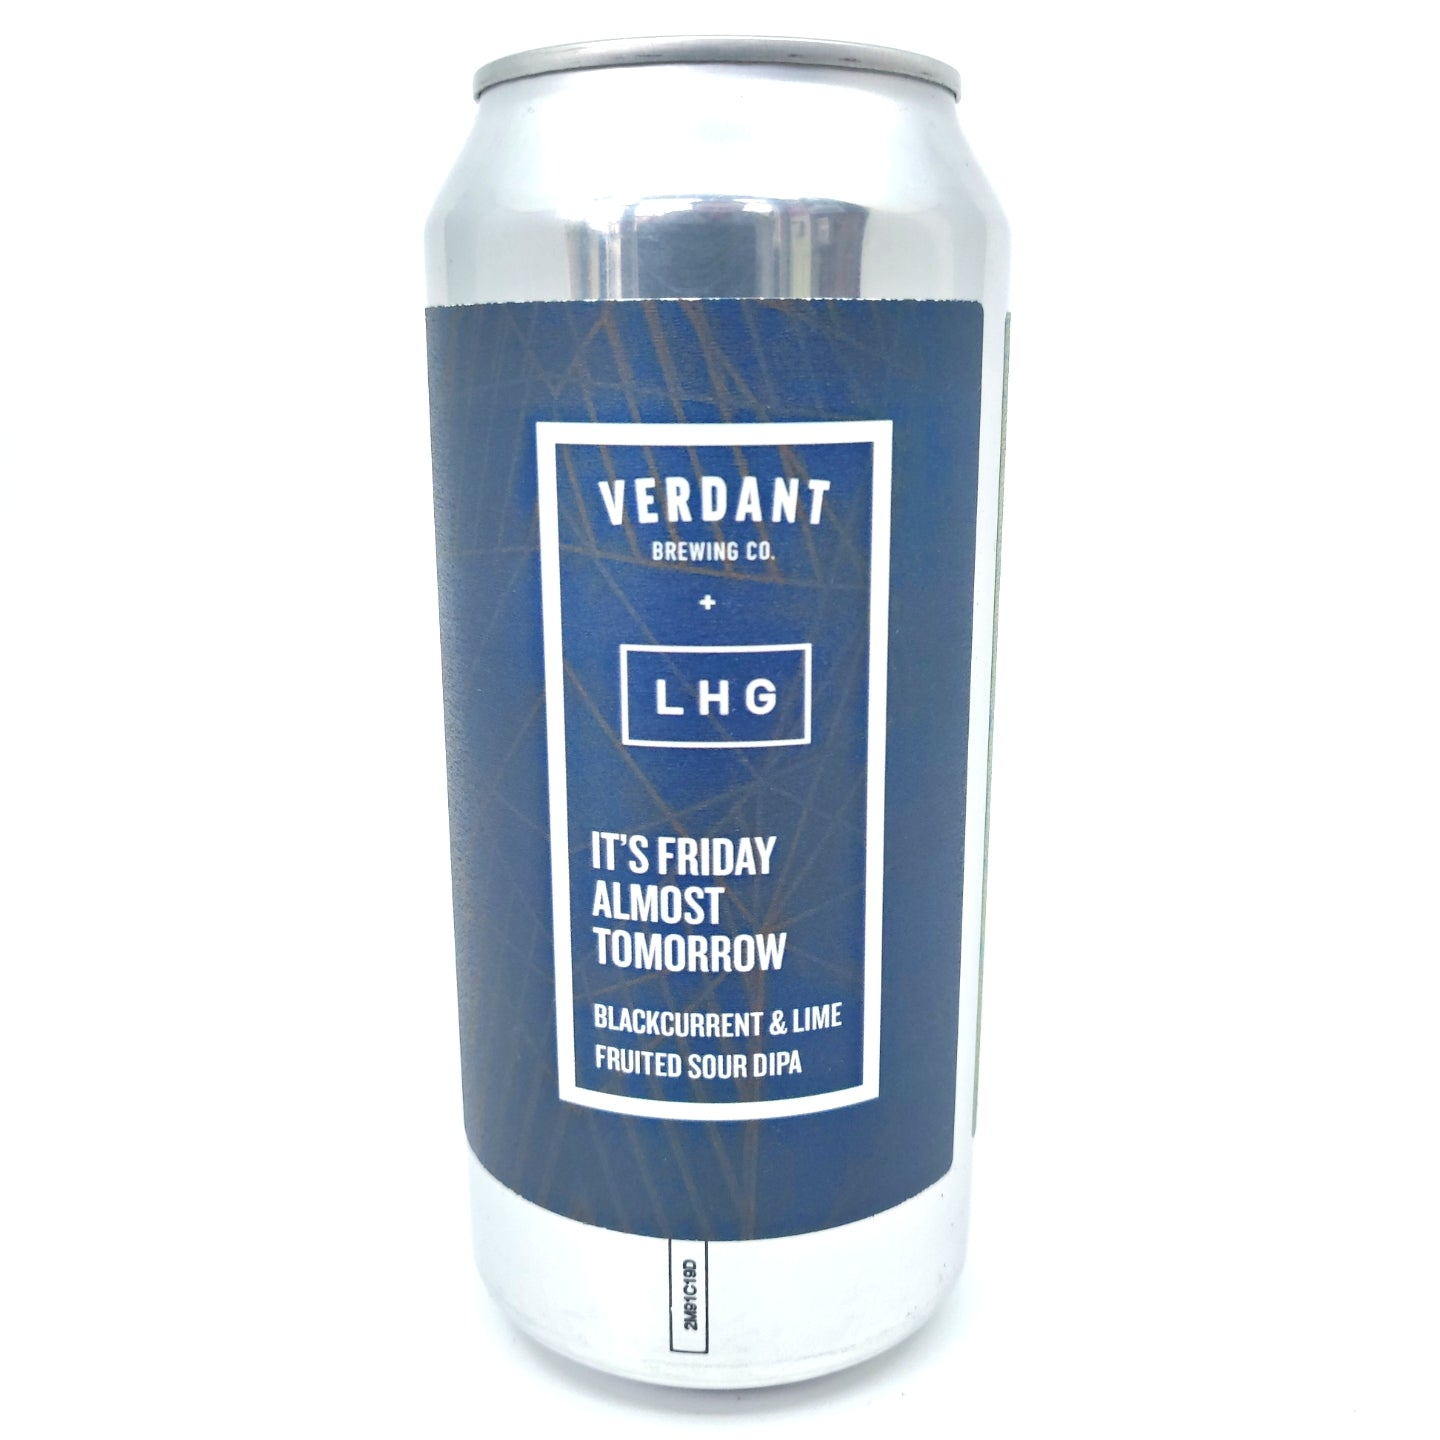 Verdant x Left Handed Giant It's Friday Almost Tomorrow DIPA 8.4% (440ml can)-Hop Burns & Black